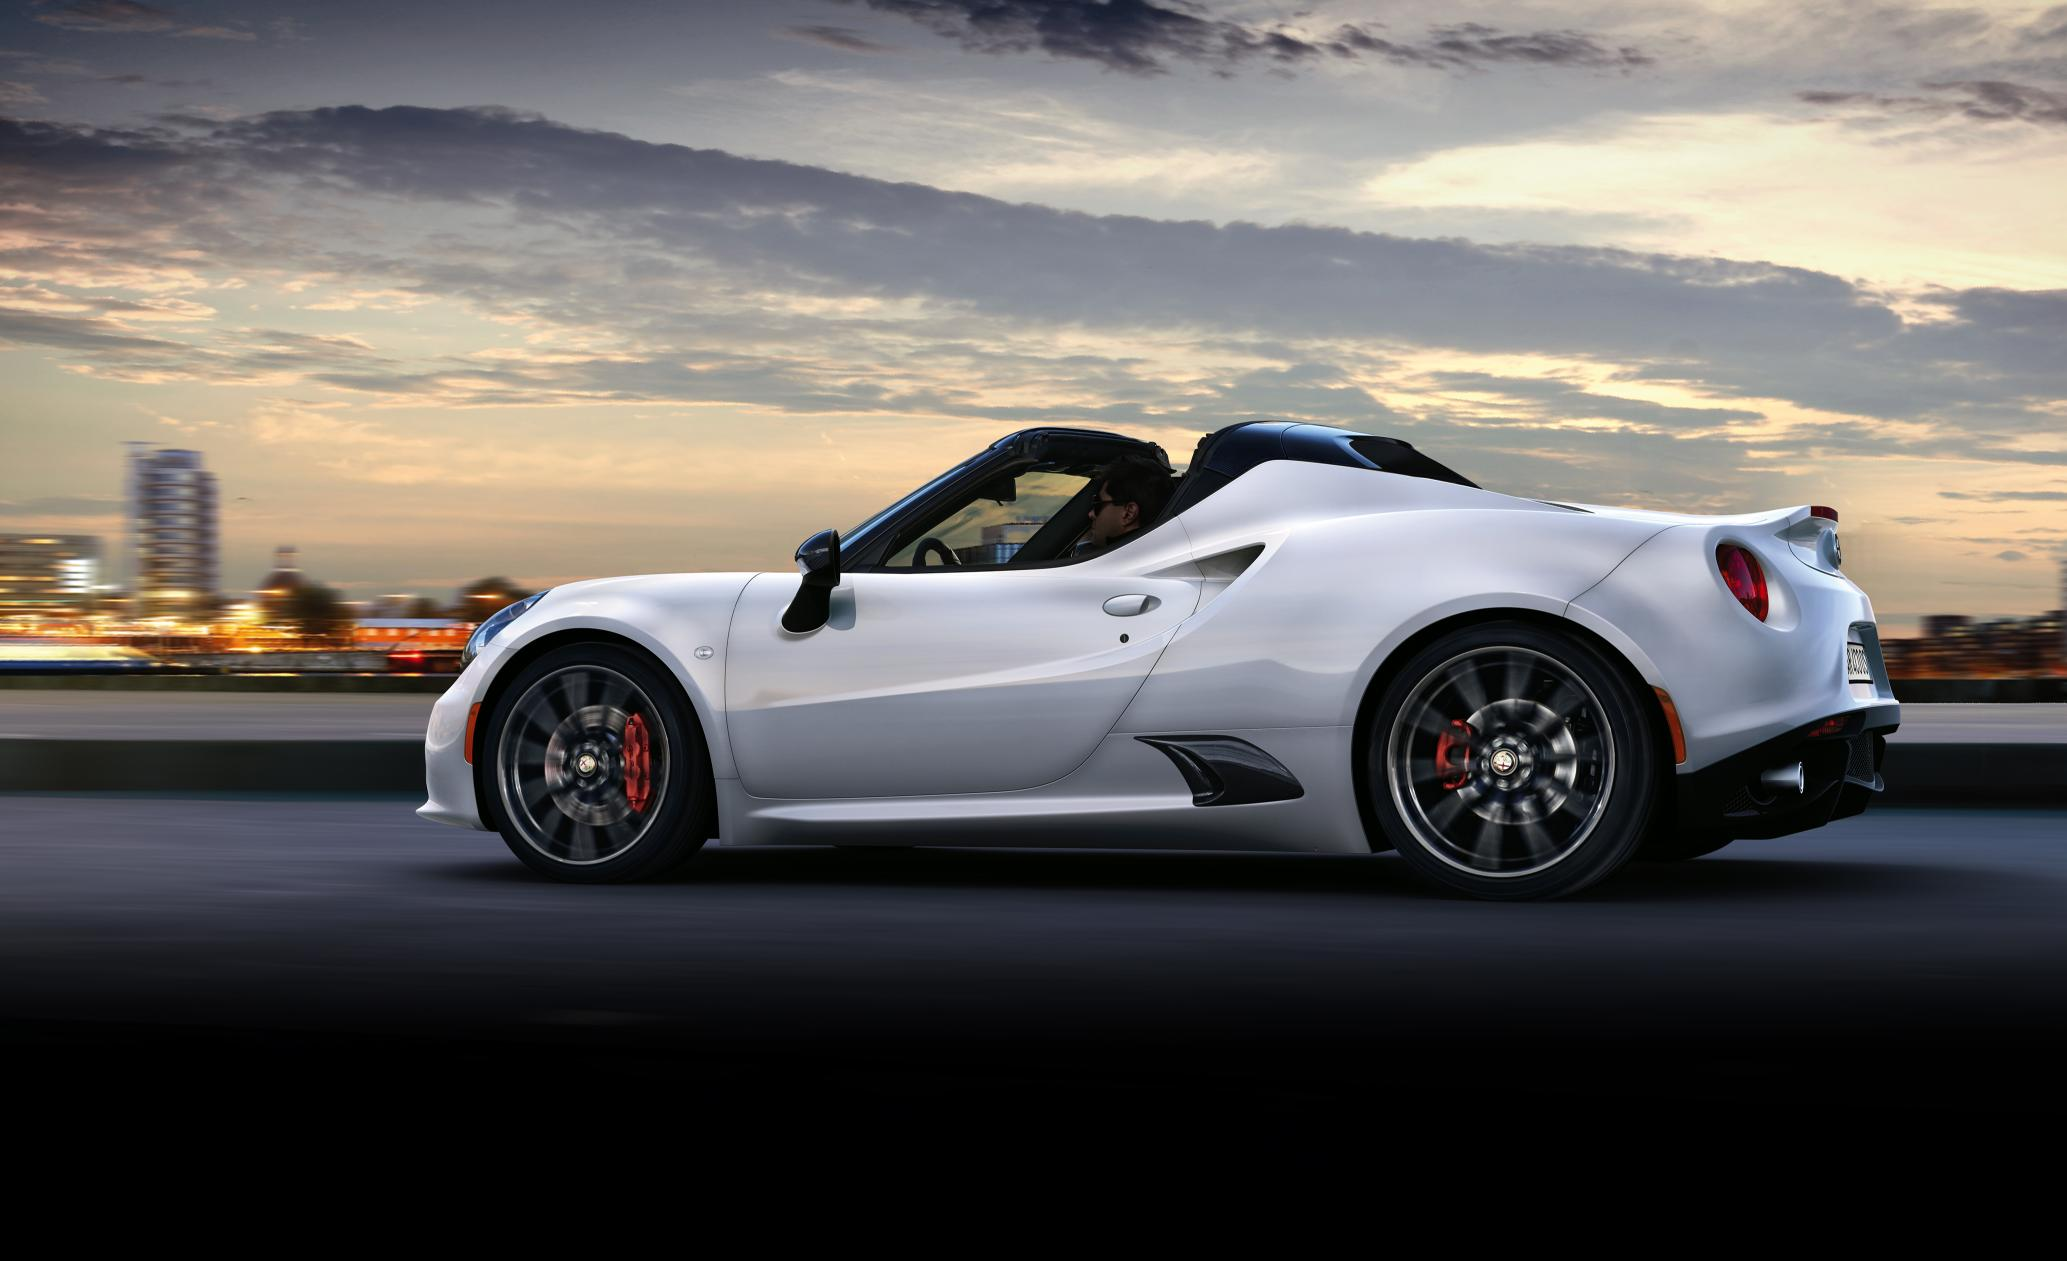 ALFA ROMEO 4C SPIDER TO MAKE ITS EUROPEAN DEBUT AT THE 2015 GENEVA MOTOR SHOW